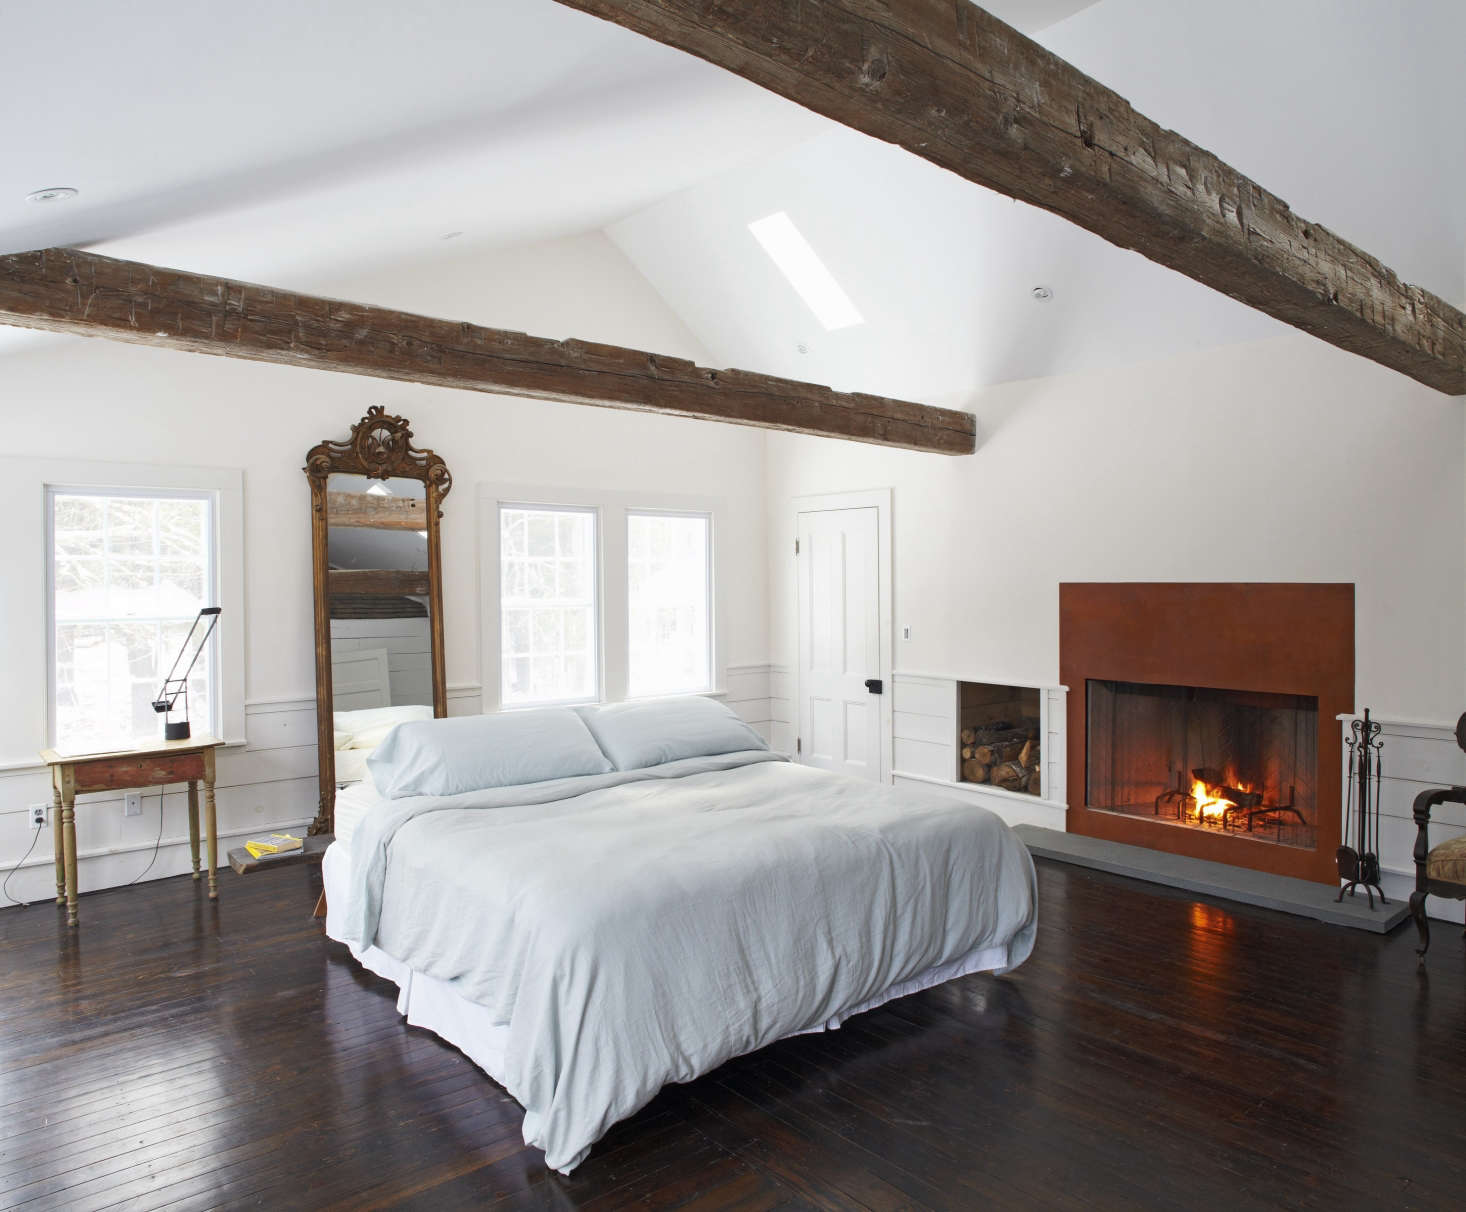 In the master suite–one of five bedrooms–the bed is floated in front of an antique mirror and alongside a wood-burning fireplace.